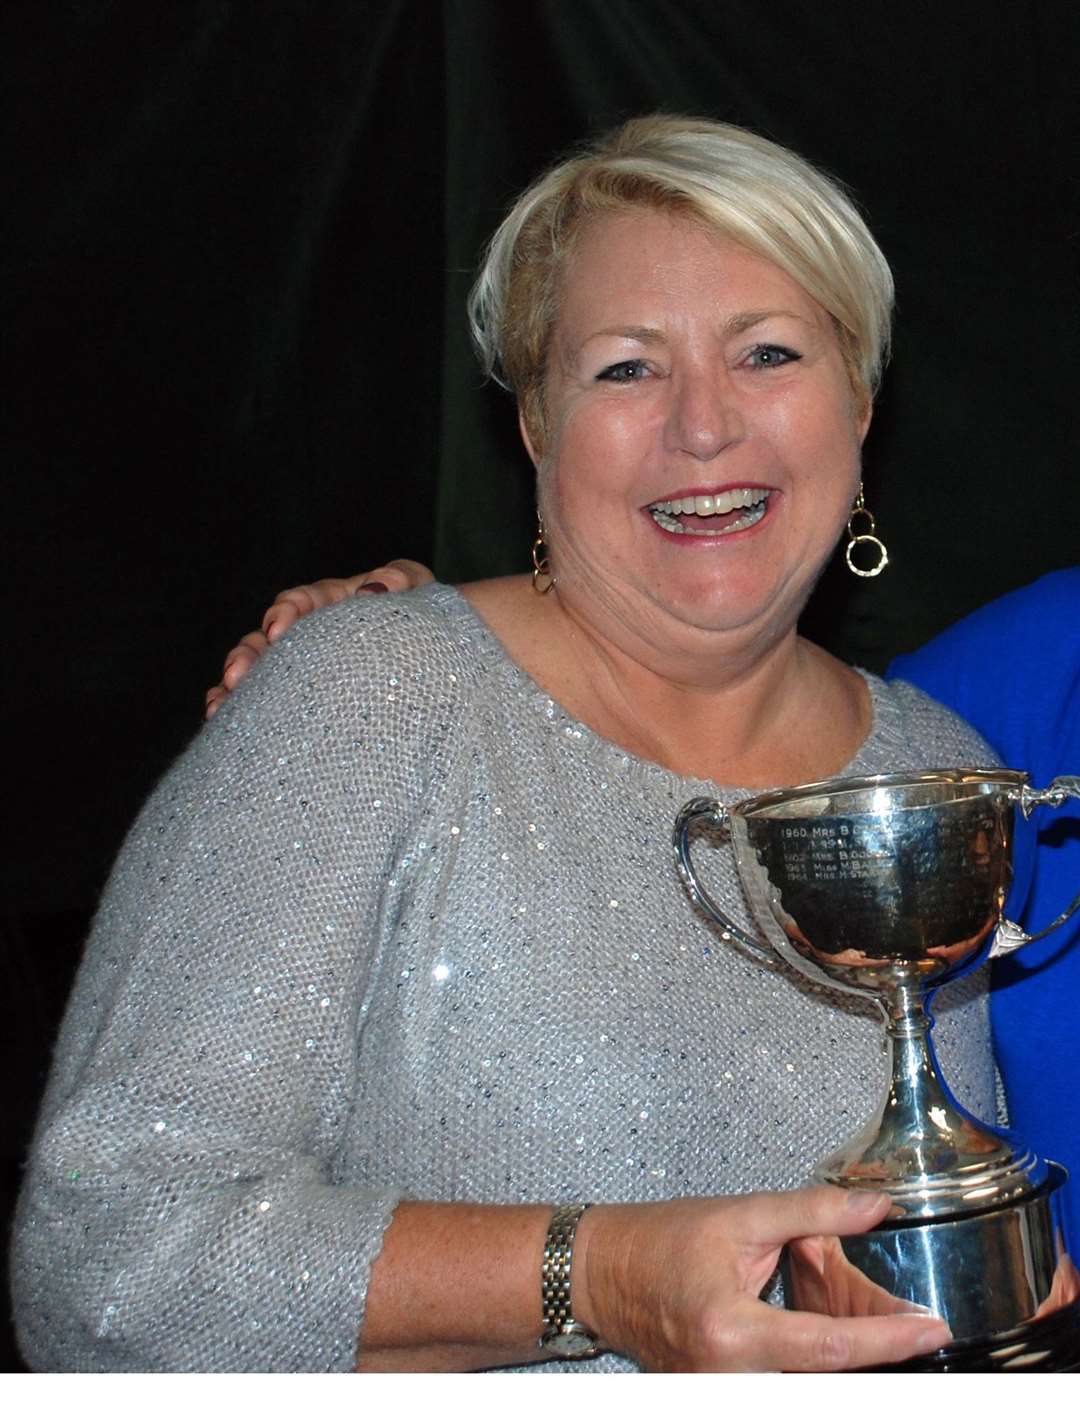 Jane Saggers won the Ladies Quincentenary Stableford at Burghley Park on Sunday. (10875160)